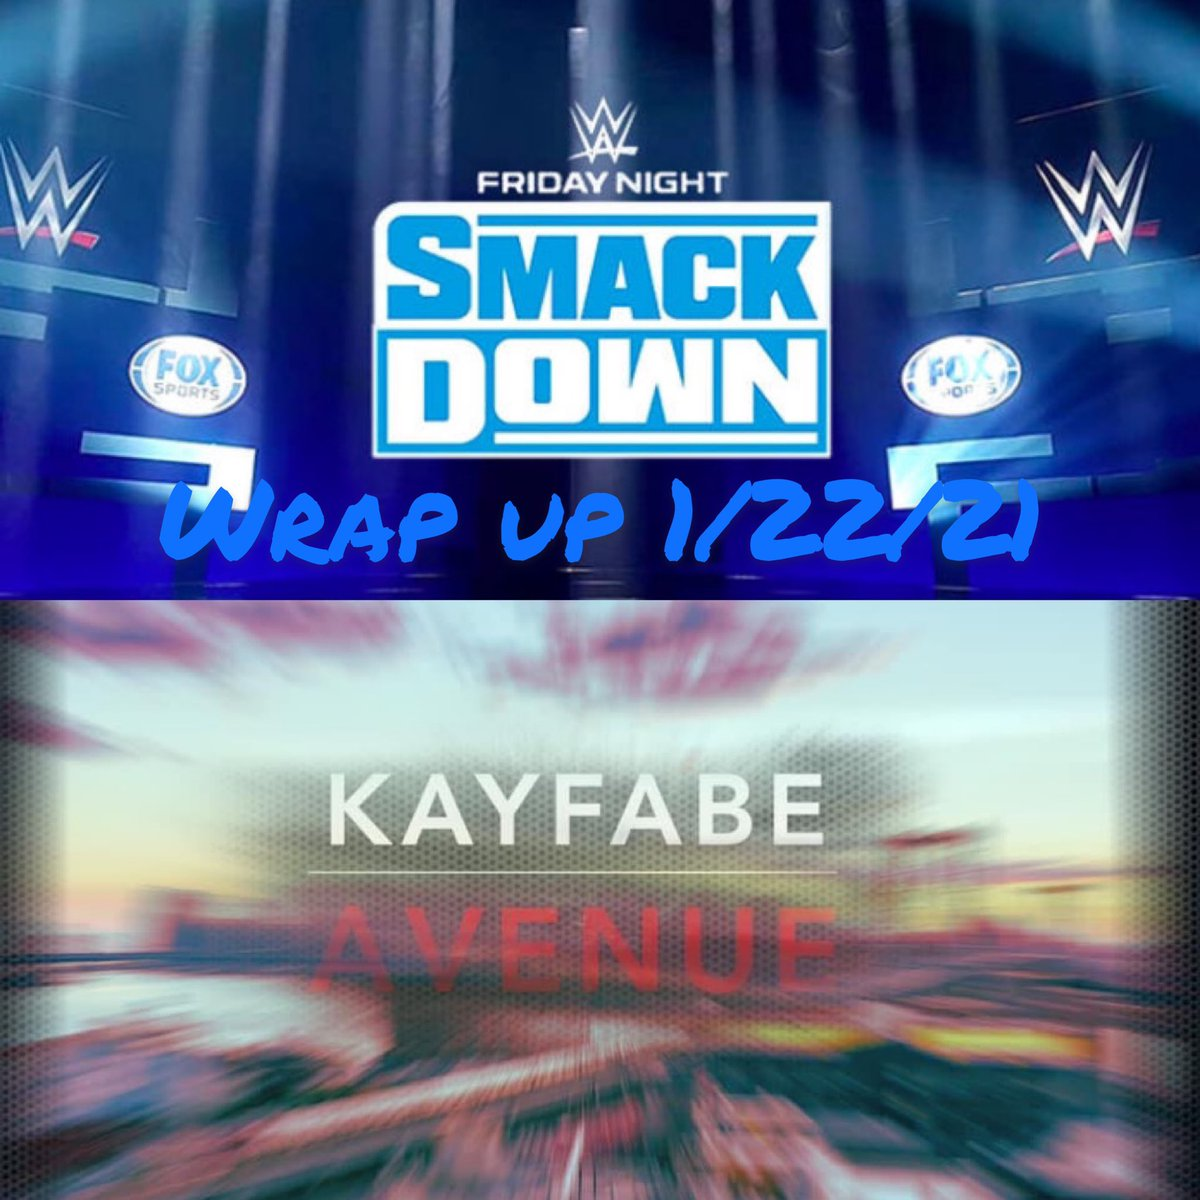 New podcasts up!! Link in bio!! Find us on all podcast streaming sites (apple and Spotify etc). Join our FB group and watch our YouTube show all @ Kayfabe Avenue. #kayfabeAvenue #podcast #aew #wwe #nxt #wweraw #SmackDown #applepodcasts #spotify #anchor #aewdynamite #royalrumble